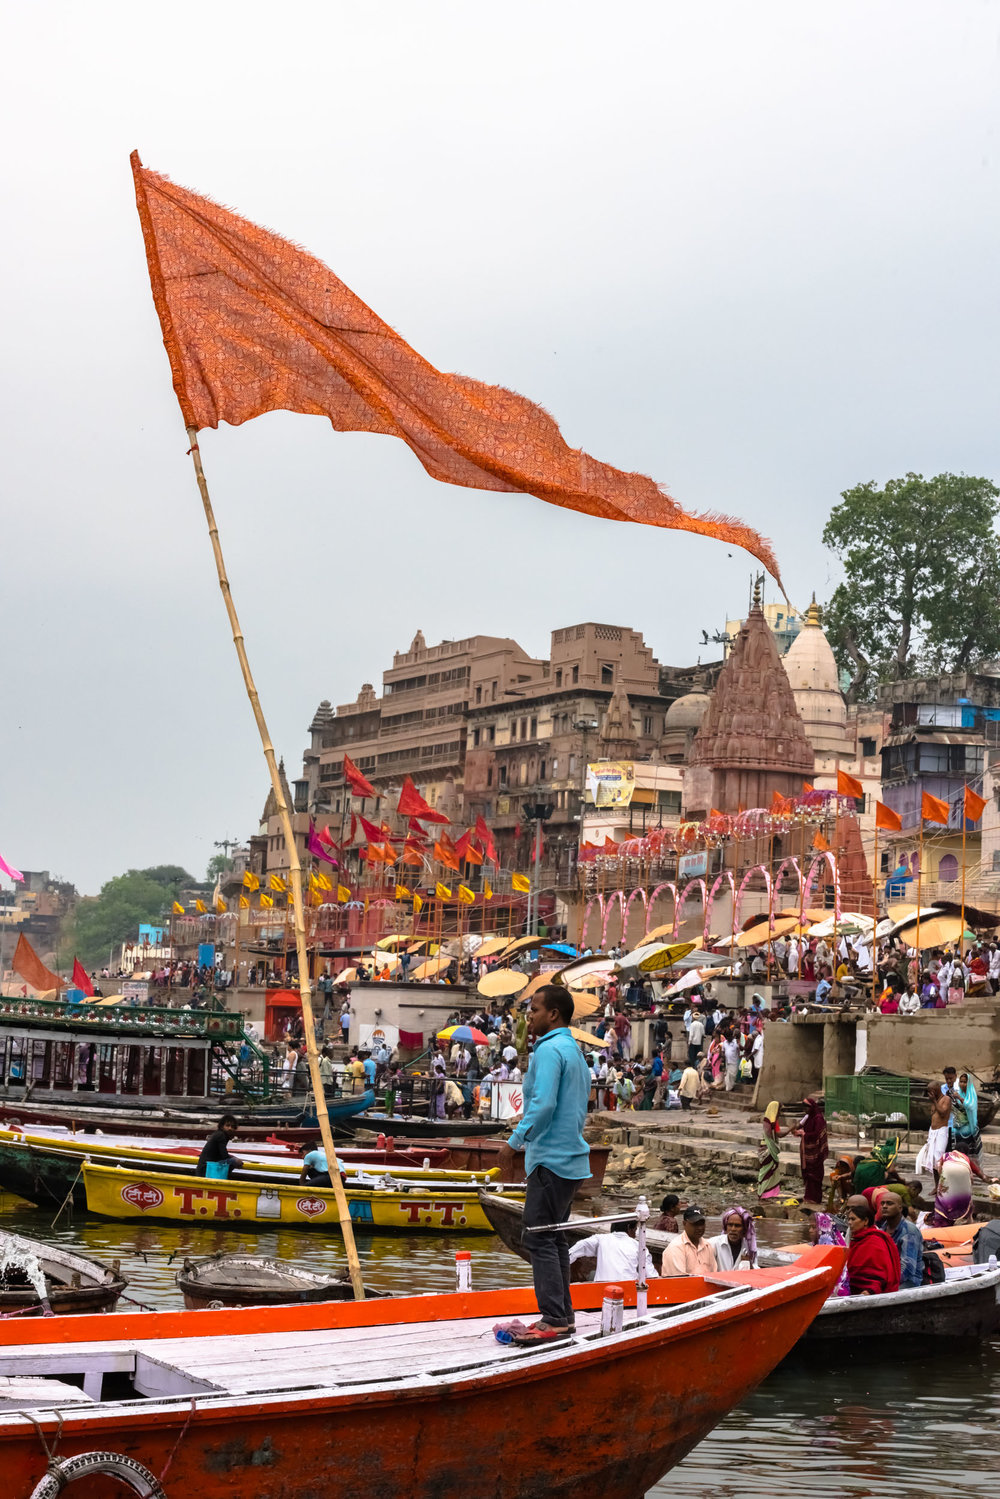 Saffron Flags flying high over Varanasi boats